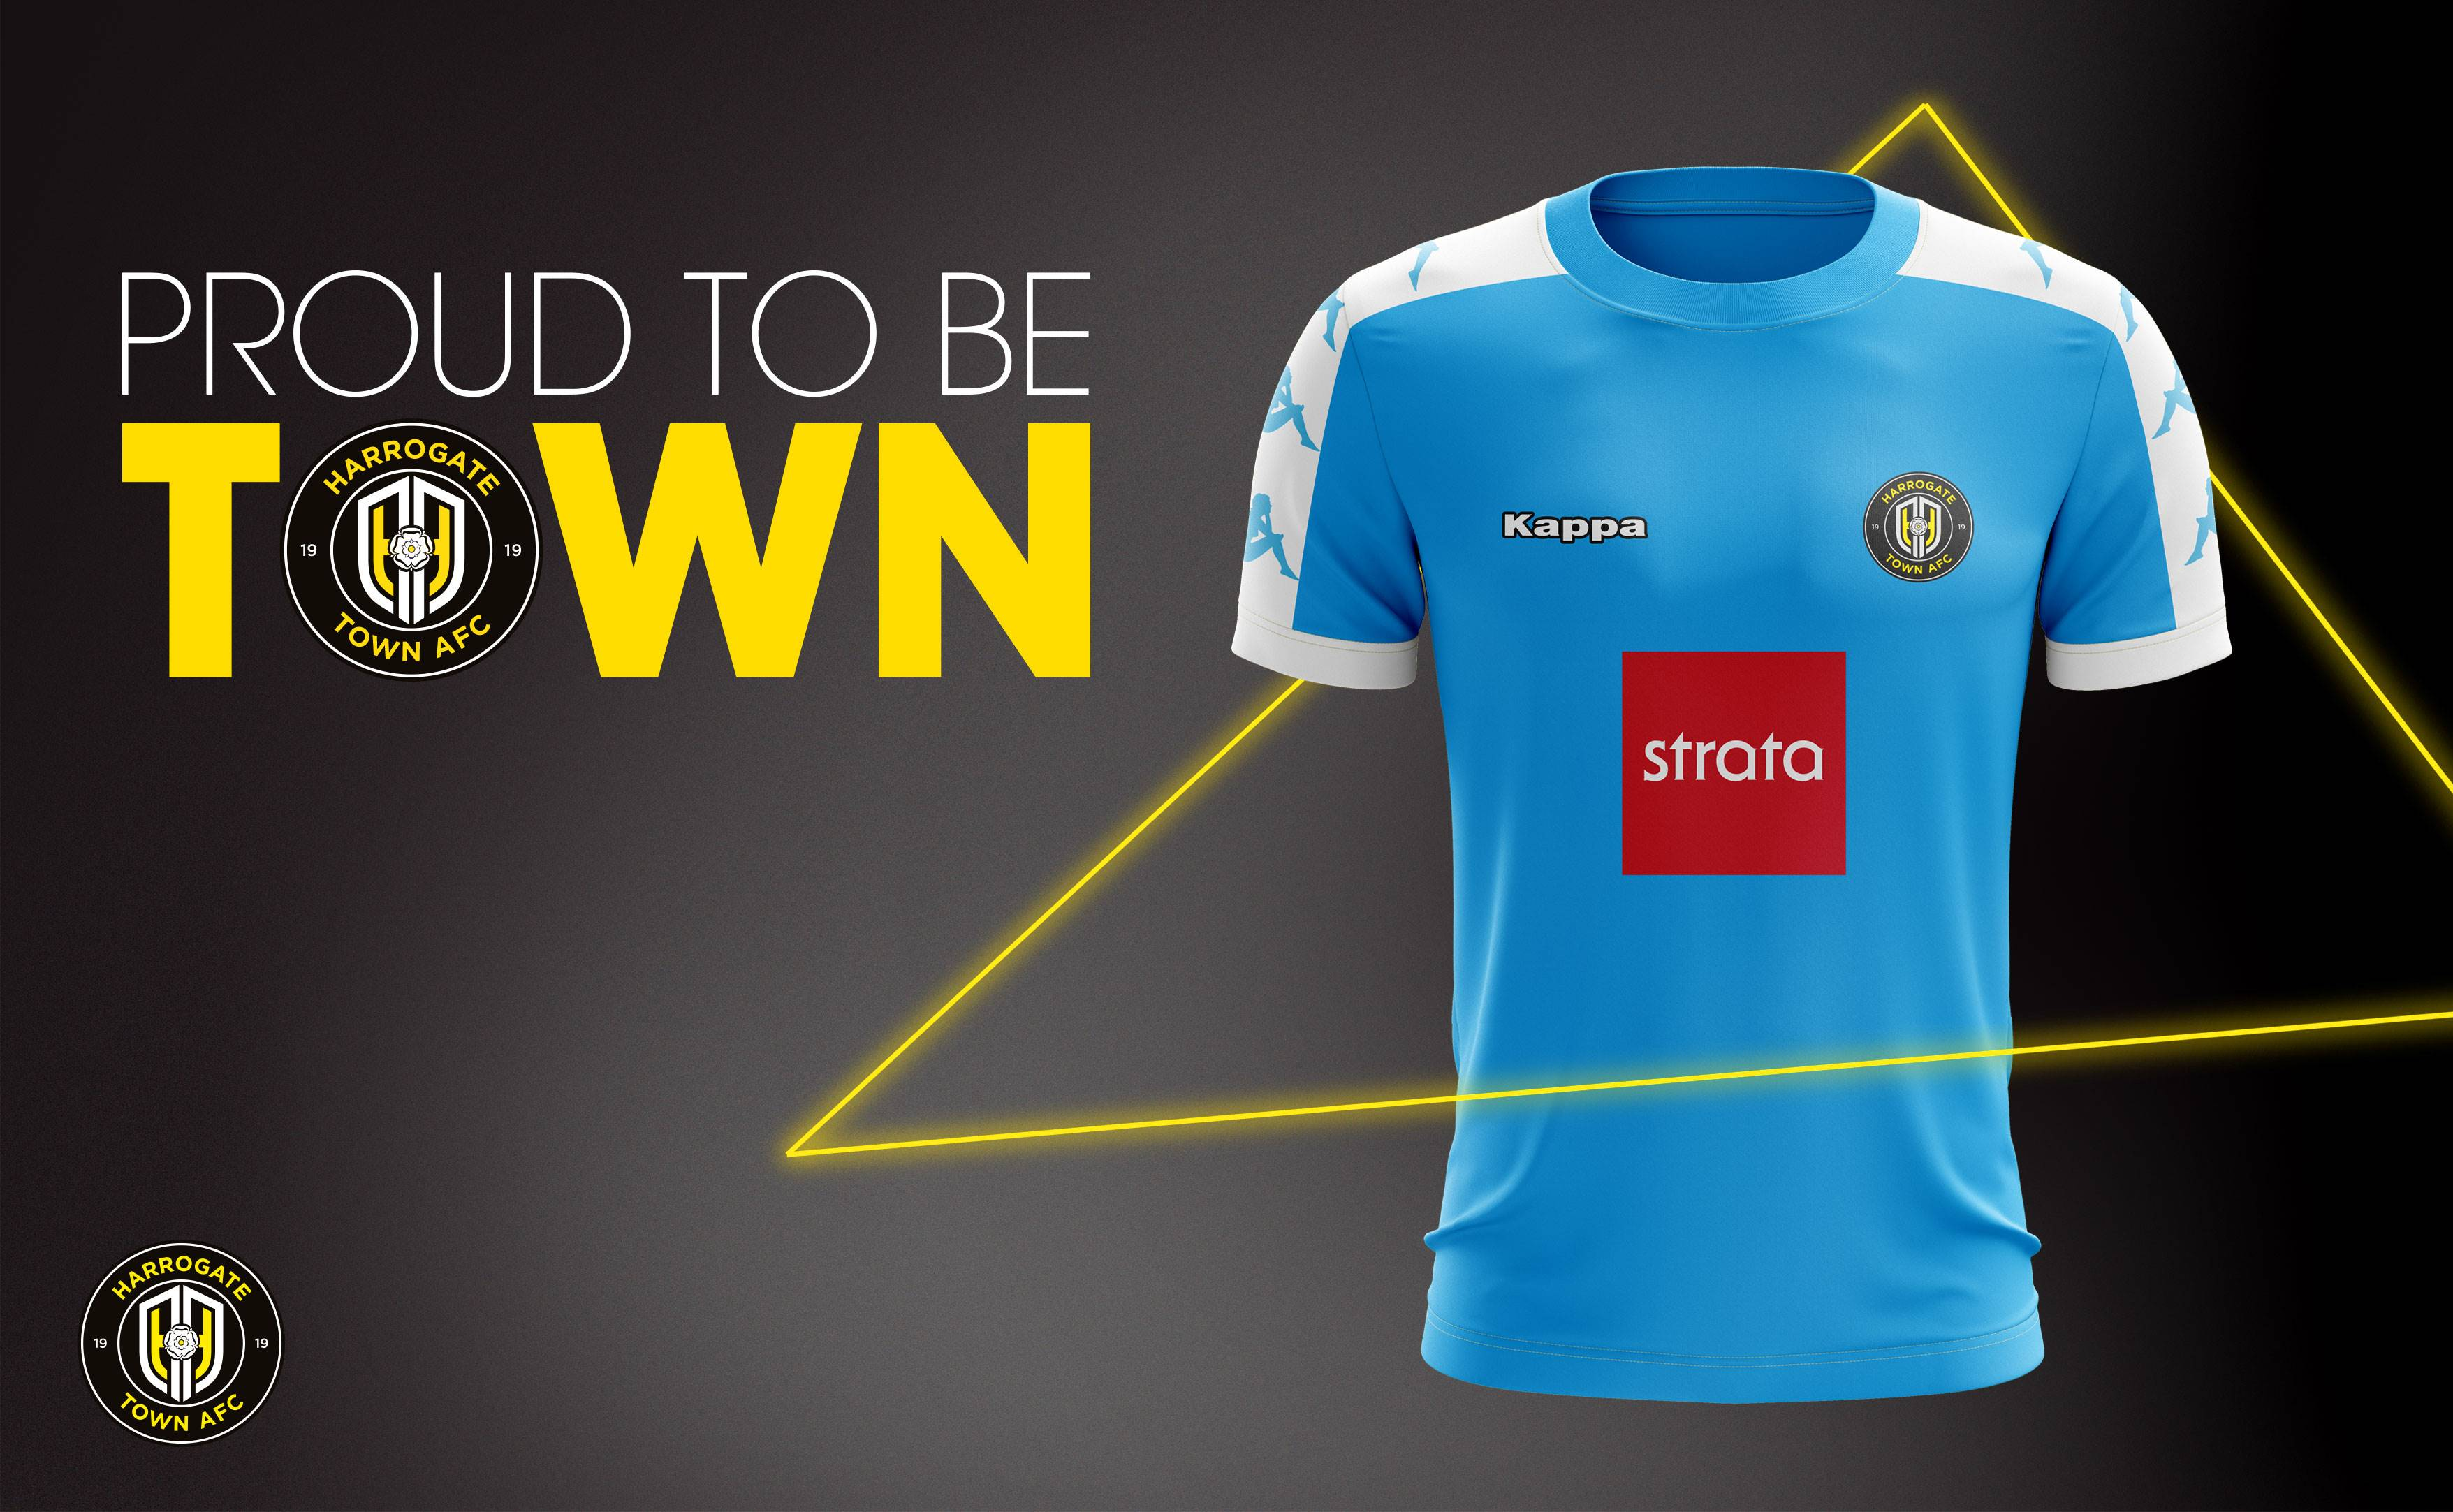 da0b70b32 We are delighted to reveal our new home and away strip for the next two  seasons.